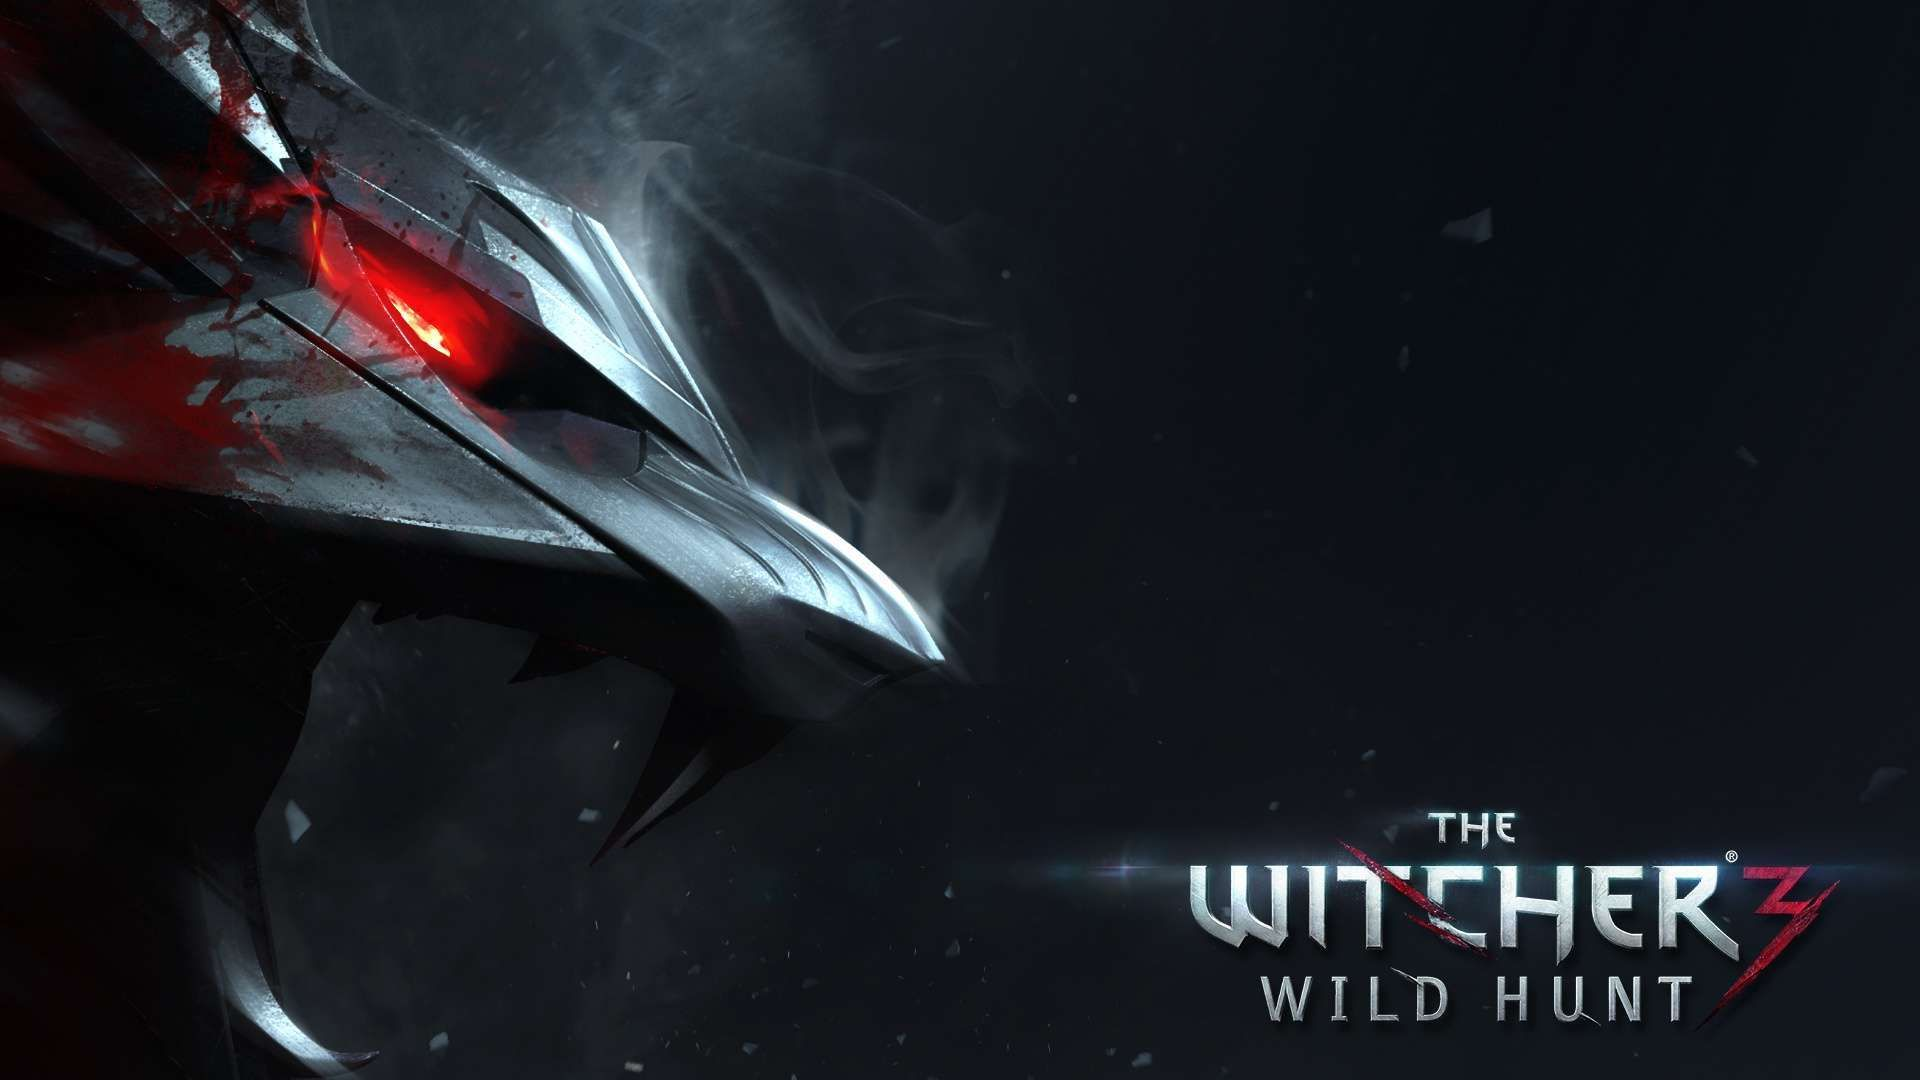 The Witcher 3 Wild Hunt 2 Hd Wallpaper 1080p Fondos De